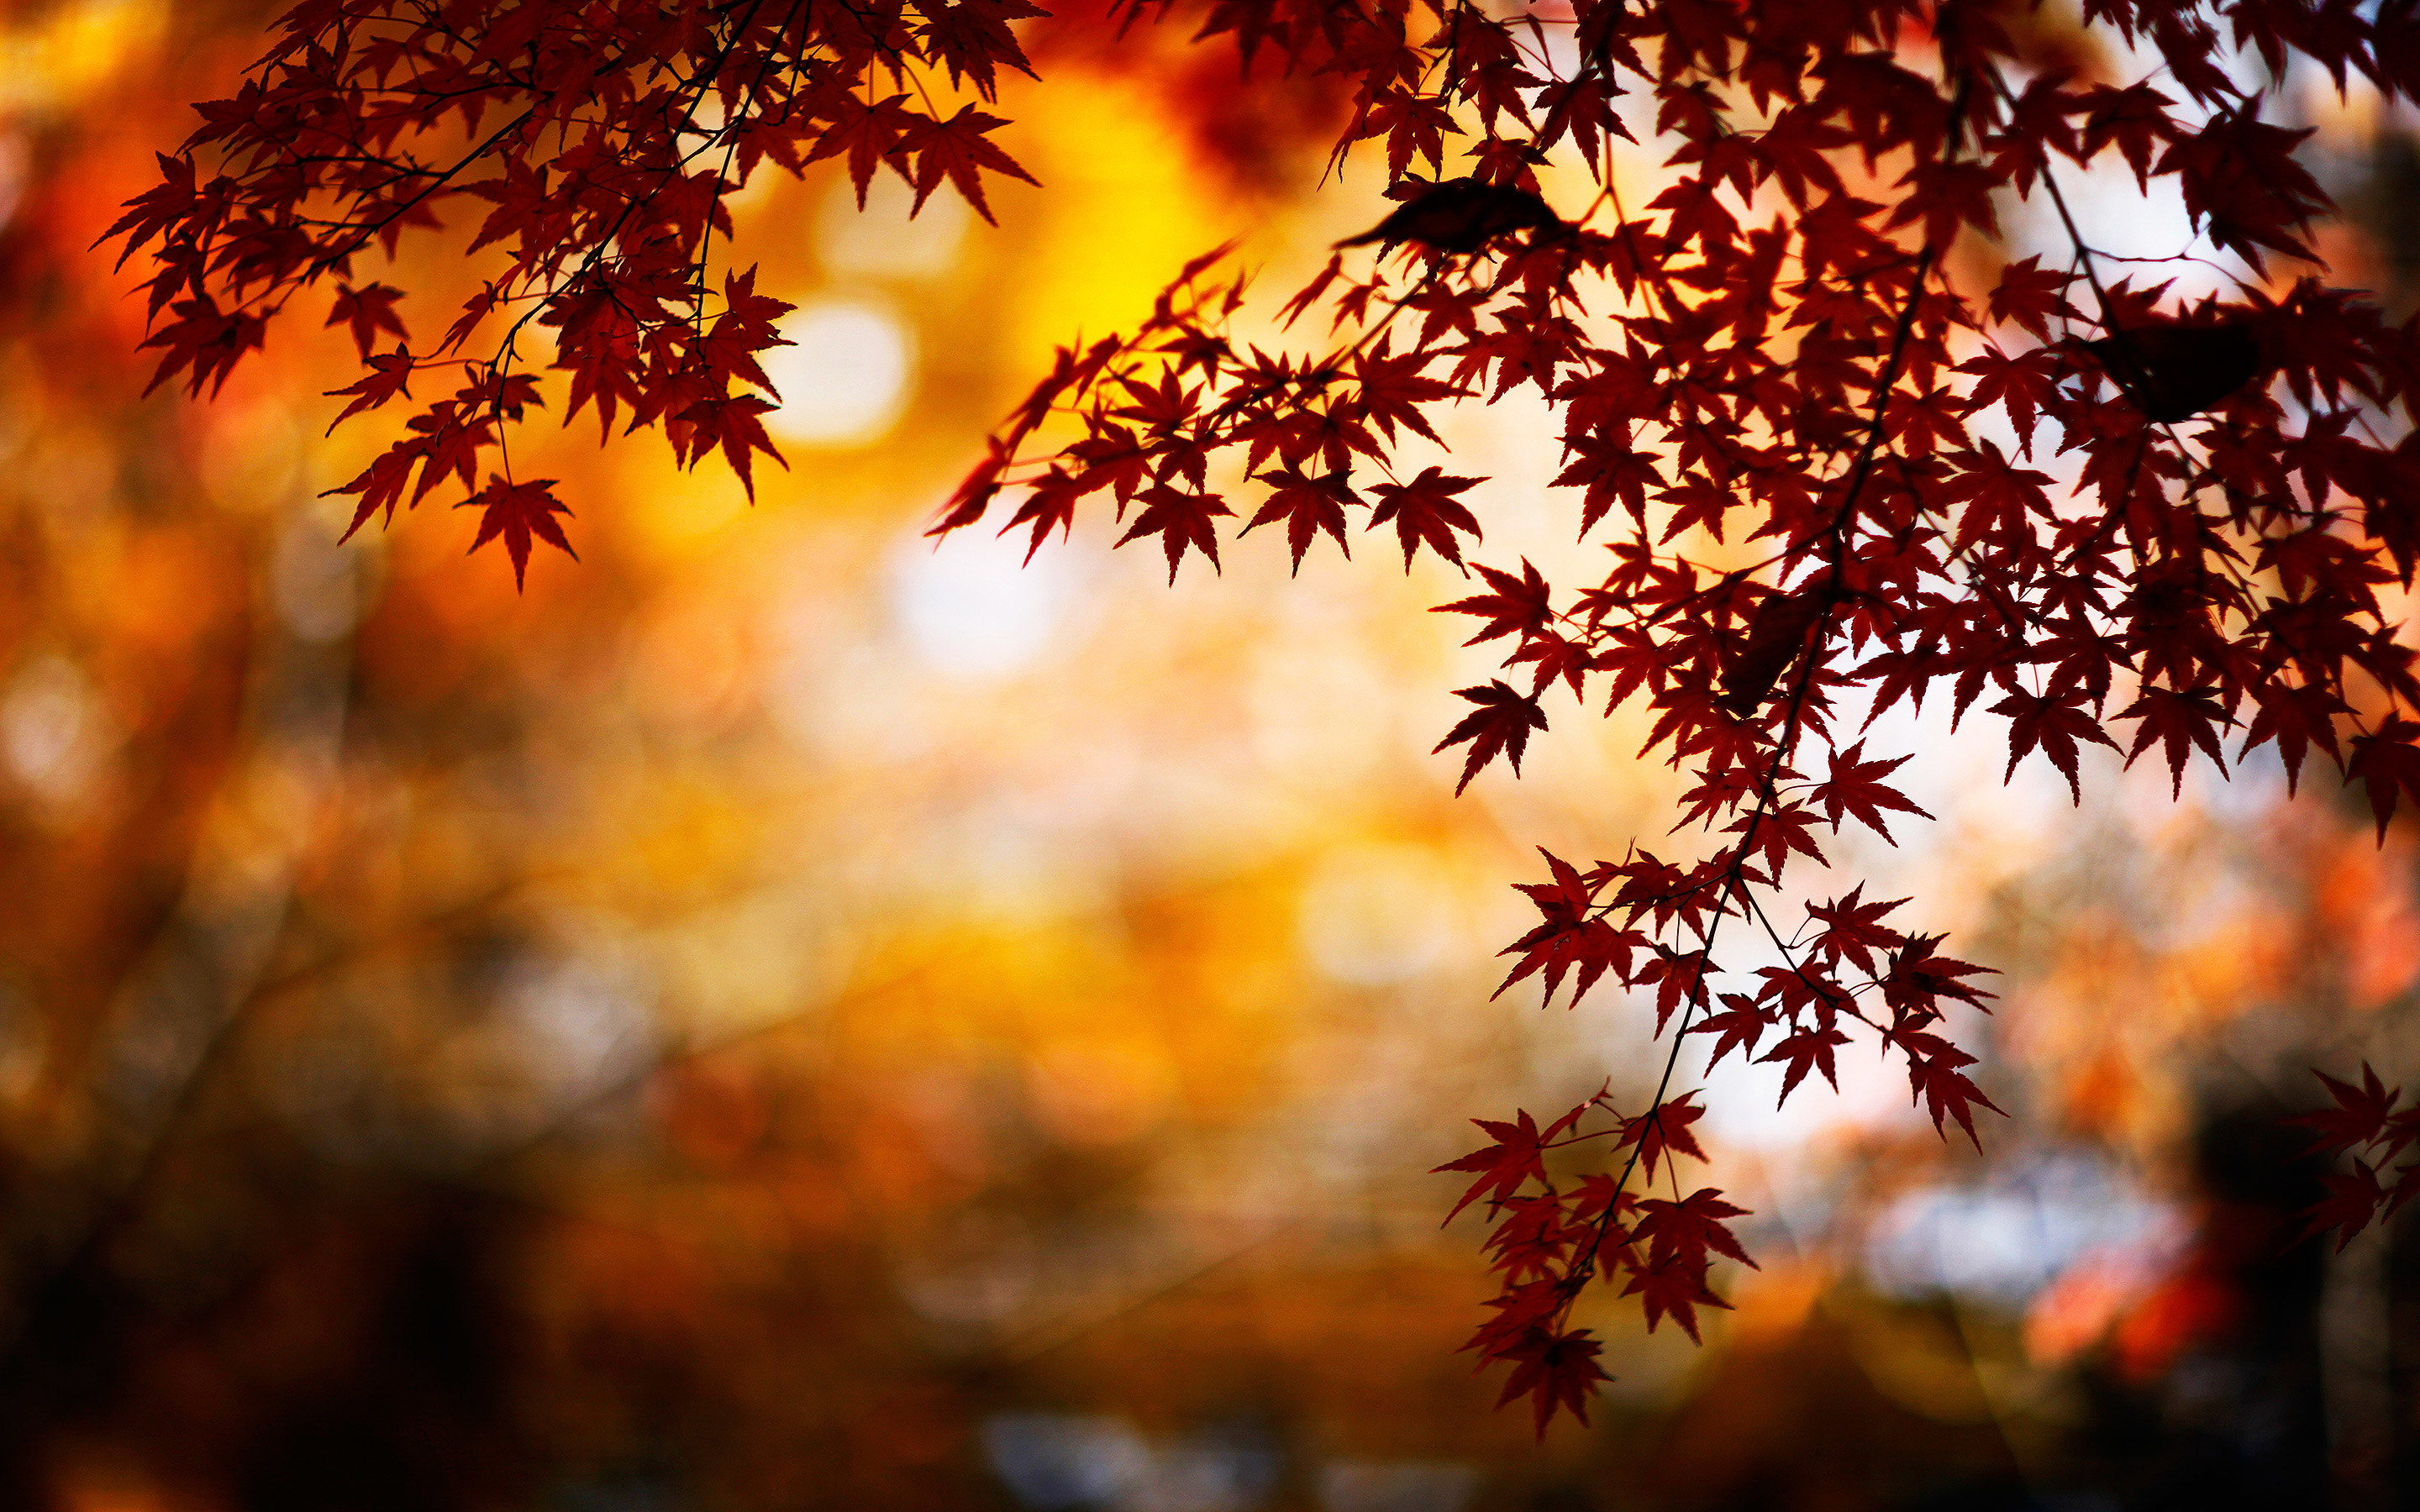 2880x1800 Autumn Leaves Wallpaper Desktop Background Autumn Leaves Spring .